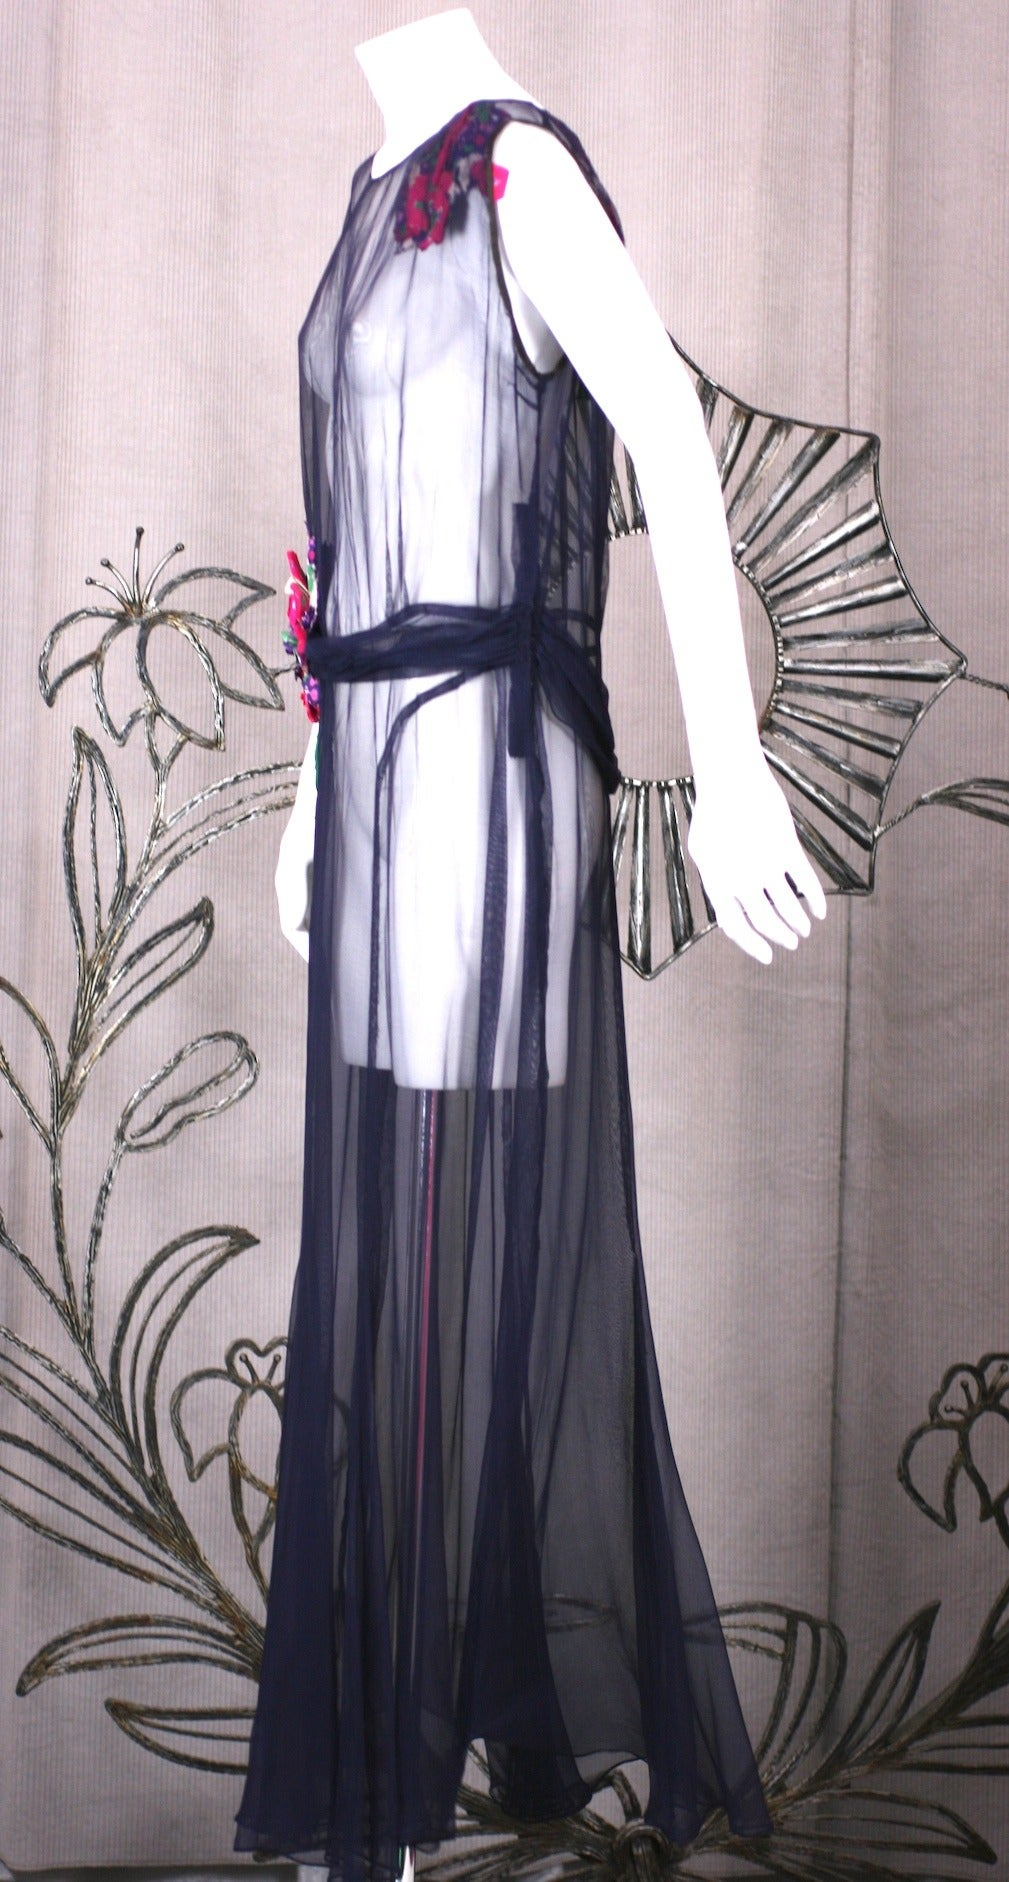 Wonderful quality early 1930s deep navy blue sheer marquisite, flower trimmed evening dress with